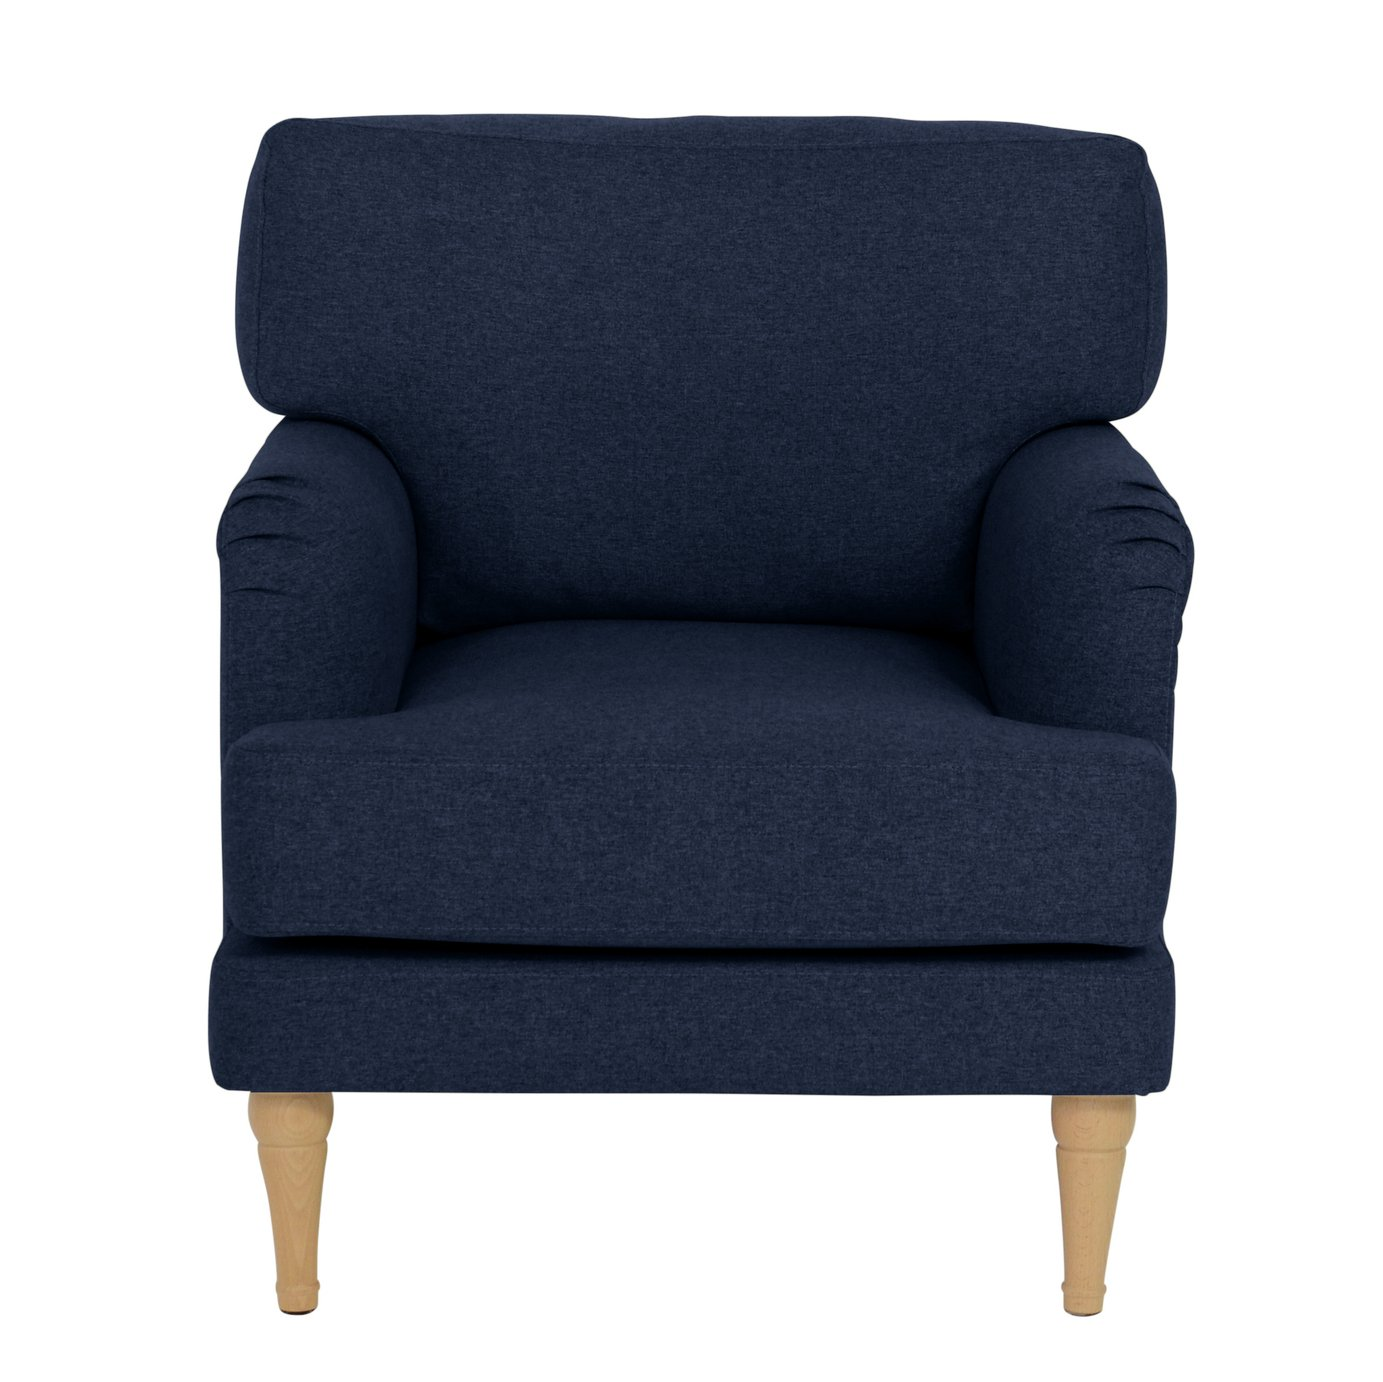 Argos Home Dune Fabric Armchair - Navy